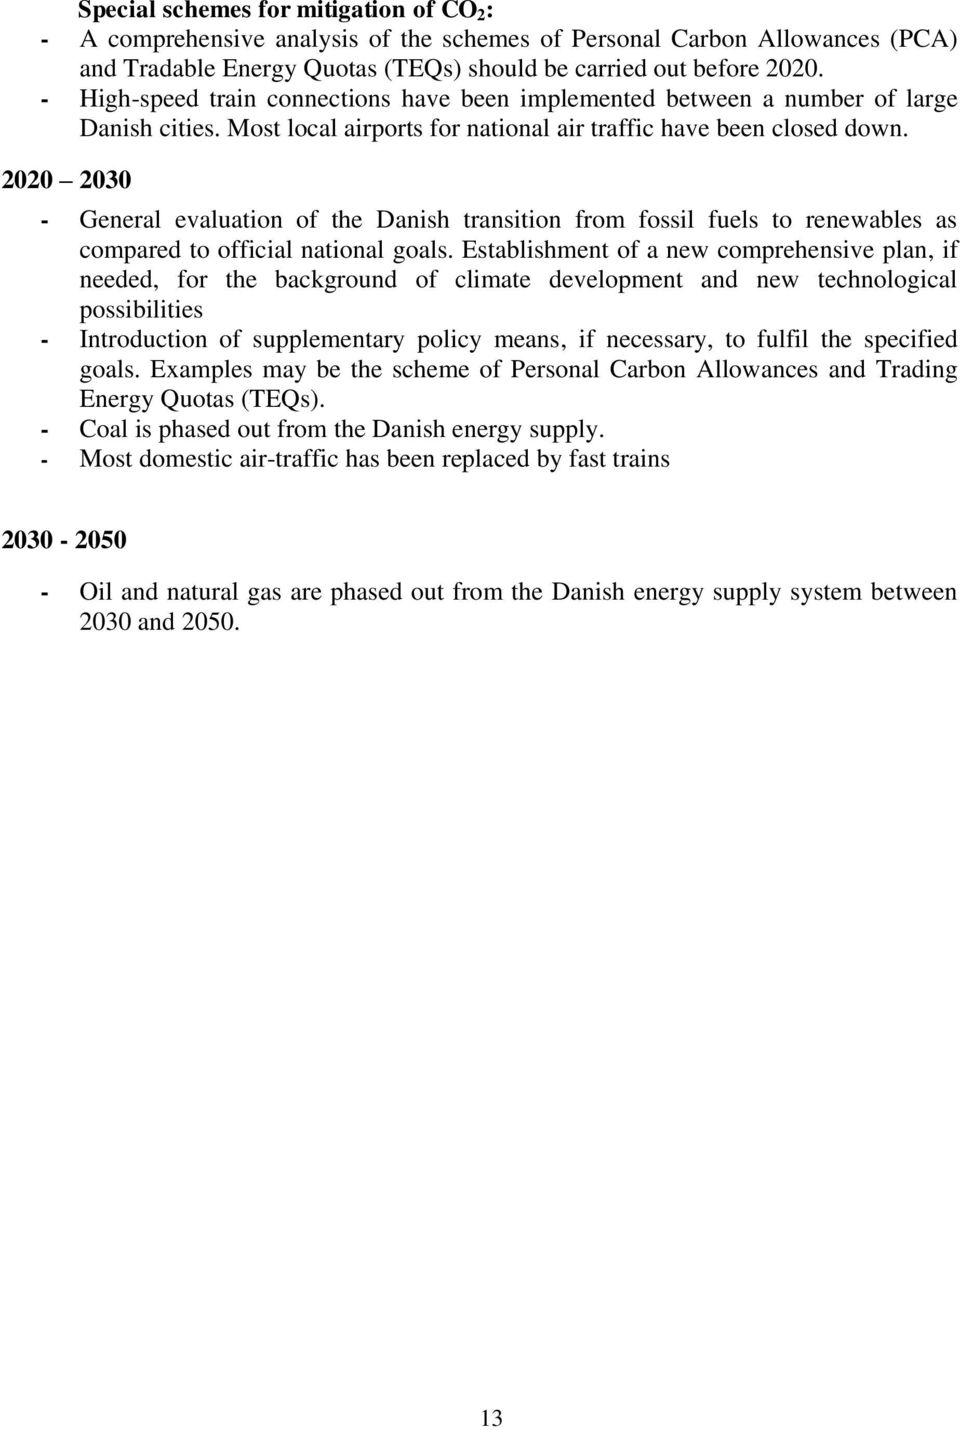 2020 2030 - General evaluation of the Danish transition from fossil fuels to renewables as compared to official national goals.